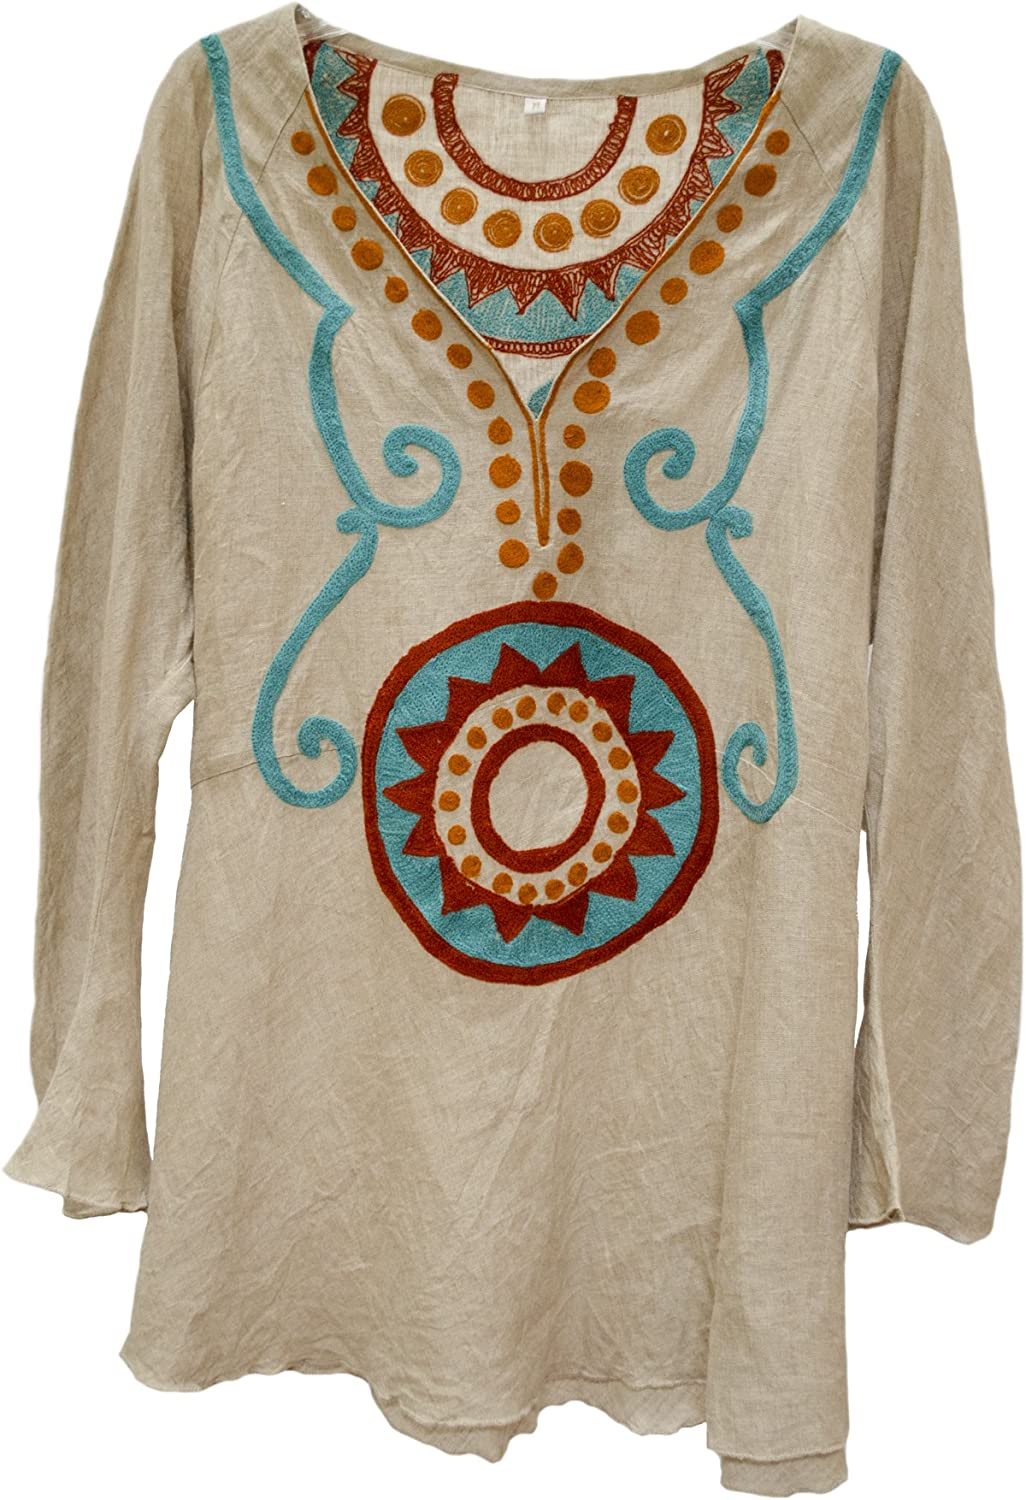 Nadia Suzani Embroidered Linen Tunic Top Shirt Natural Rust Turquoise M L